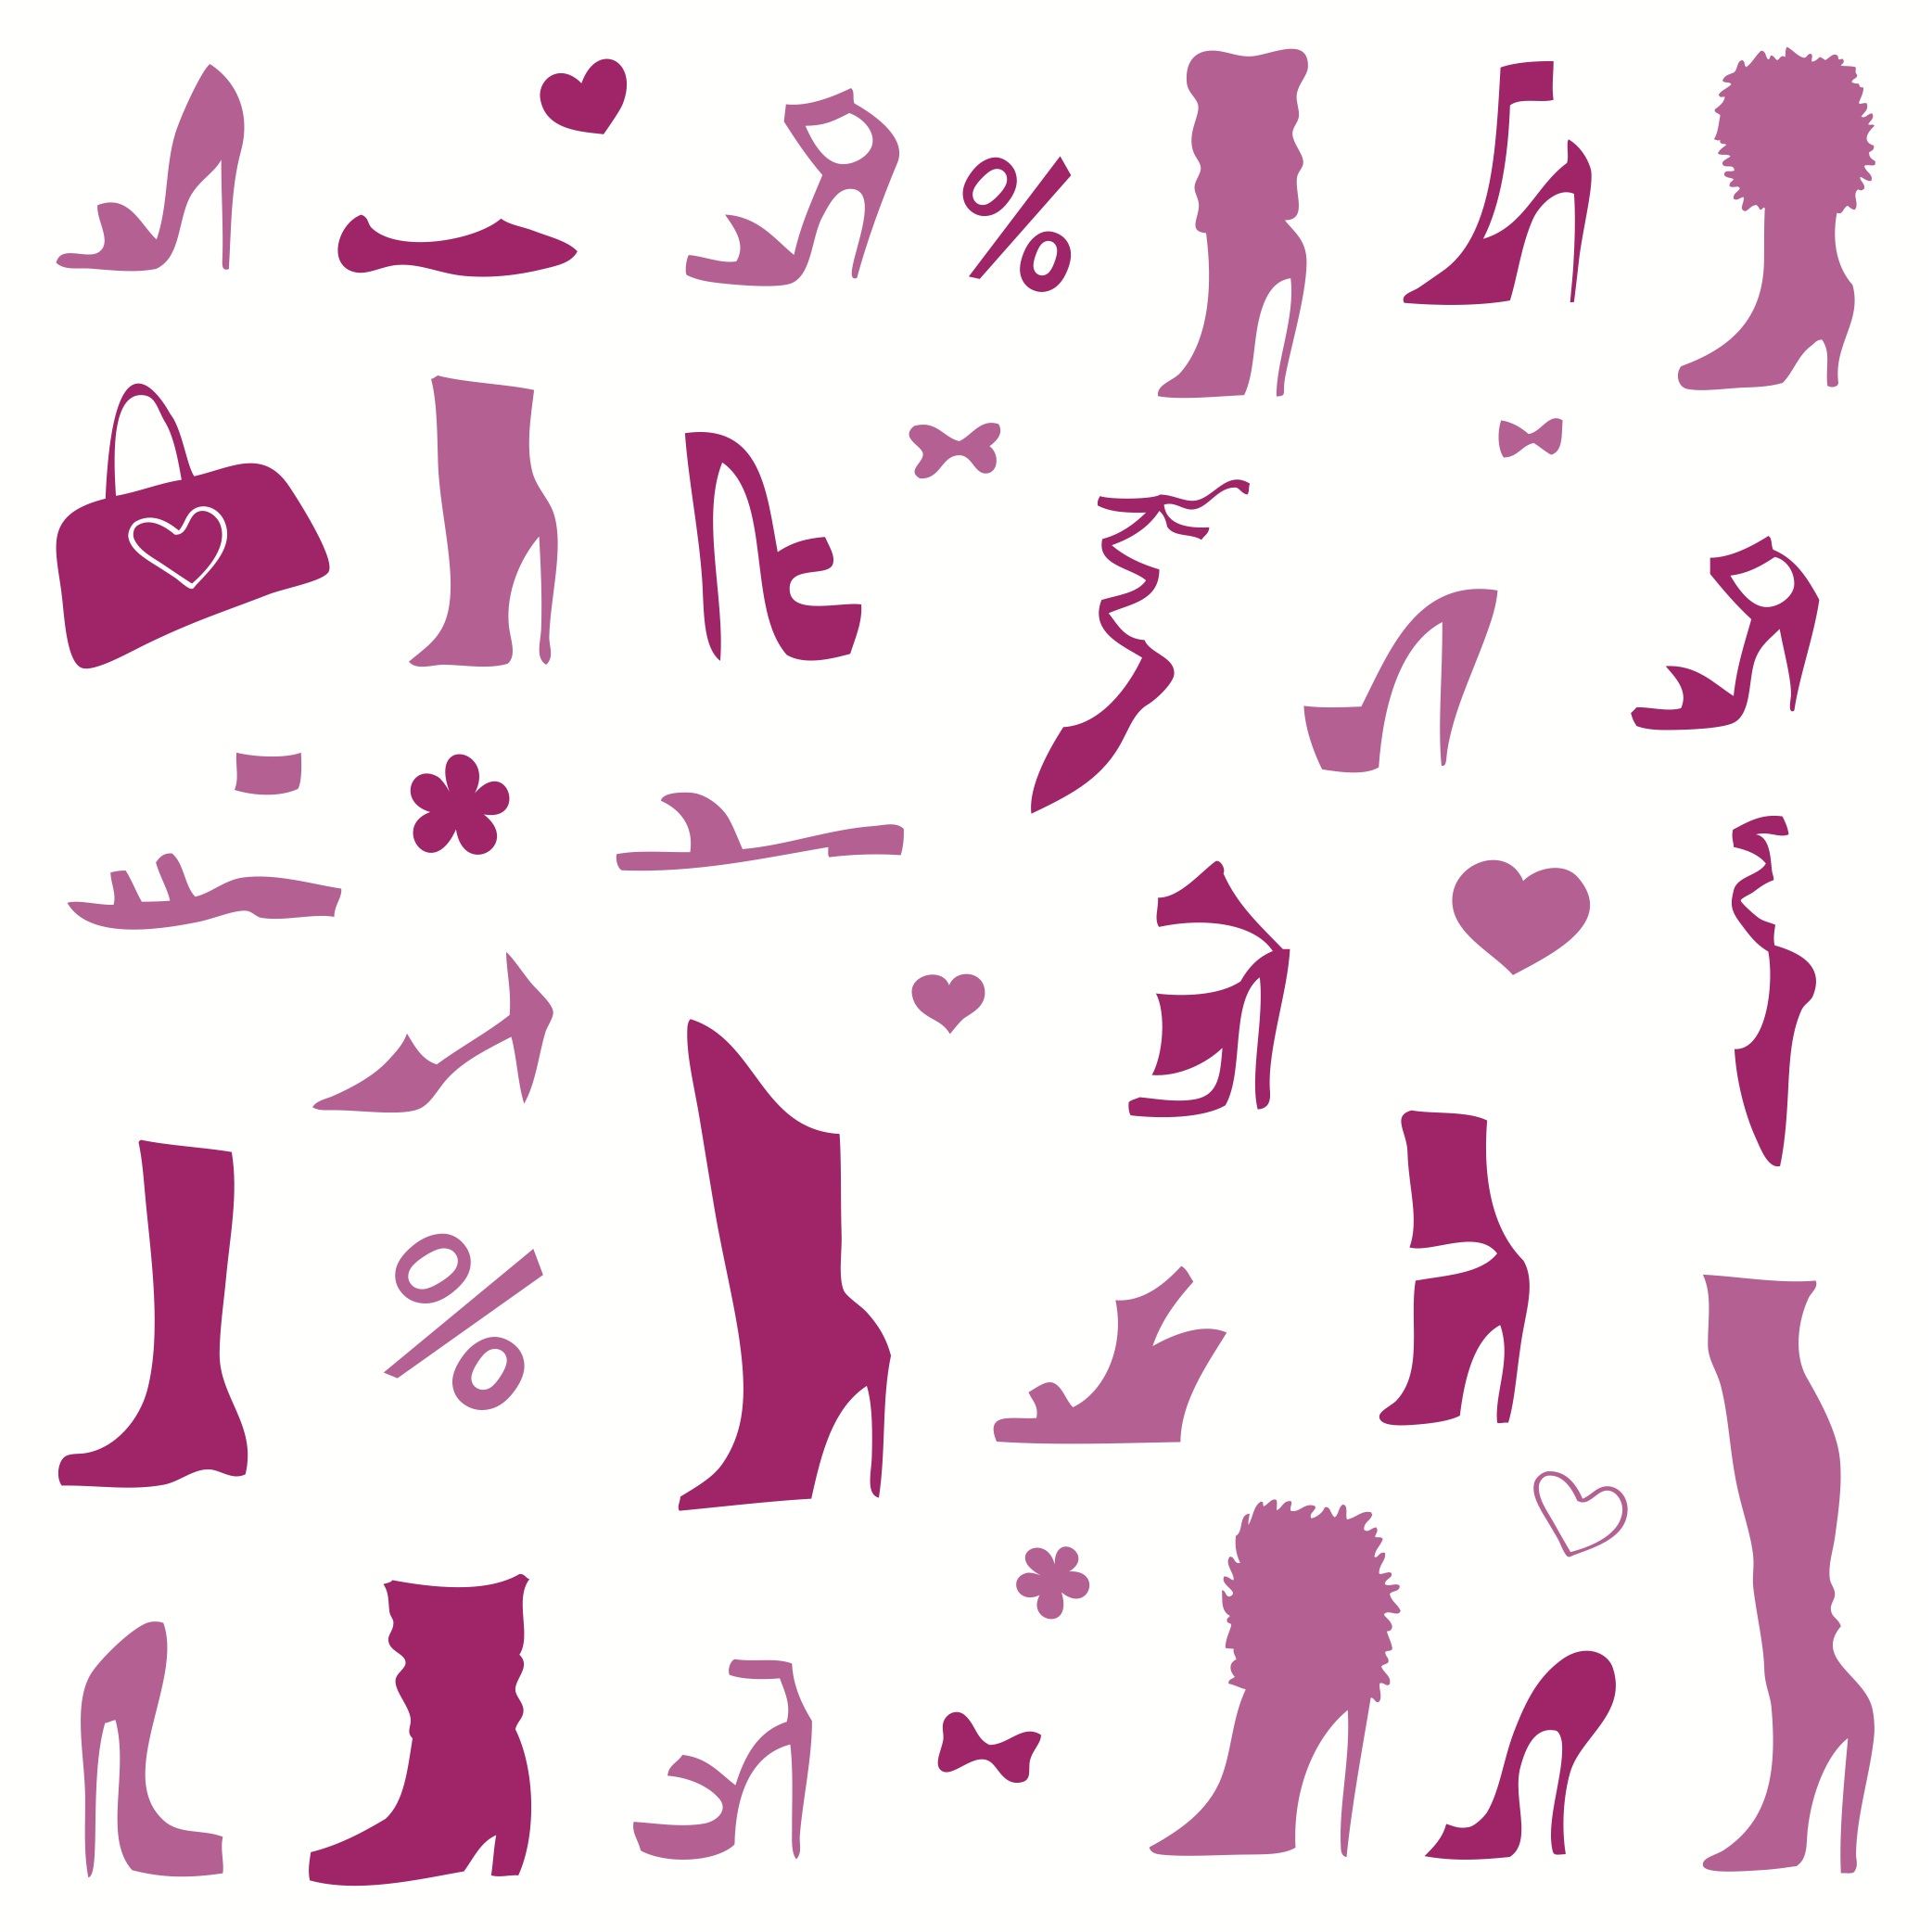 Pink women's shoes of different styles